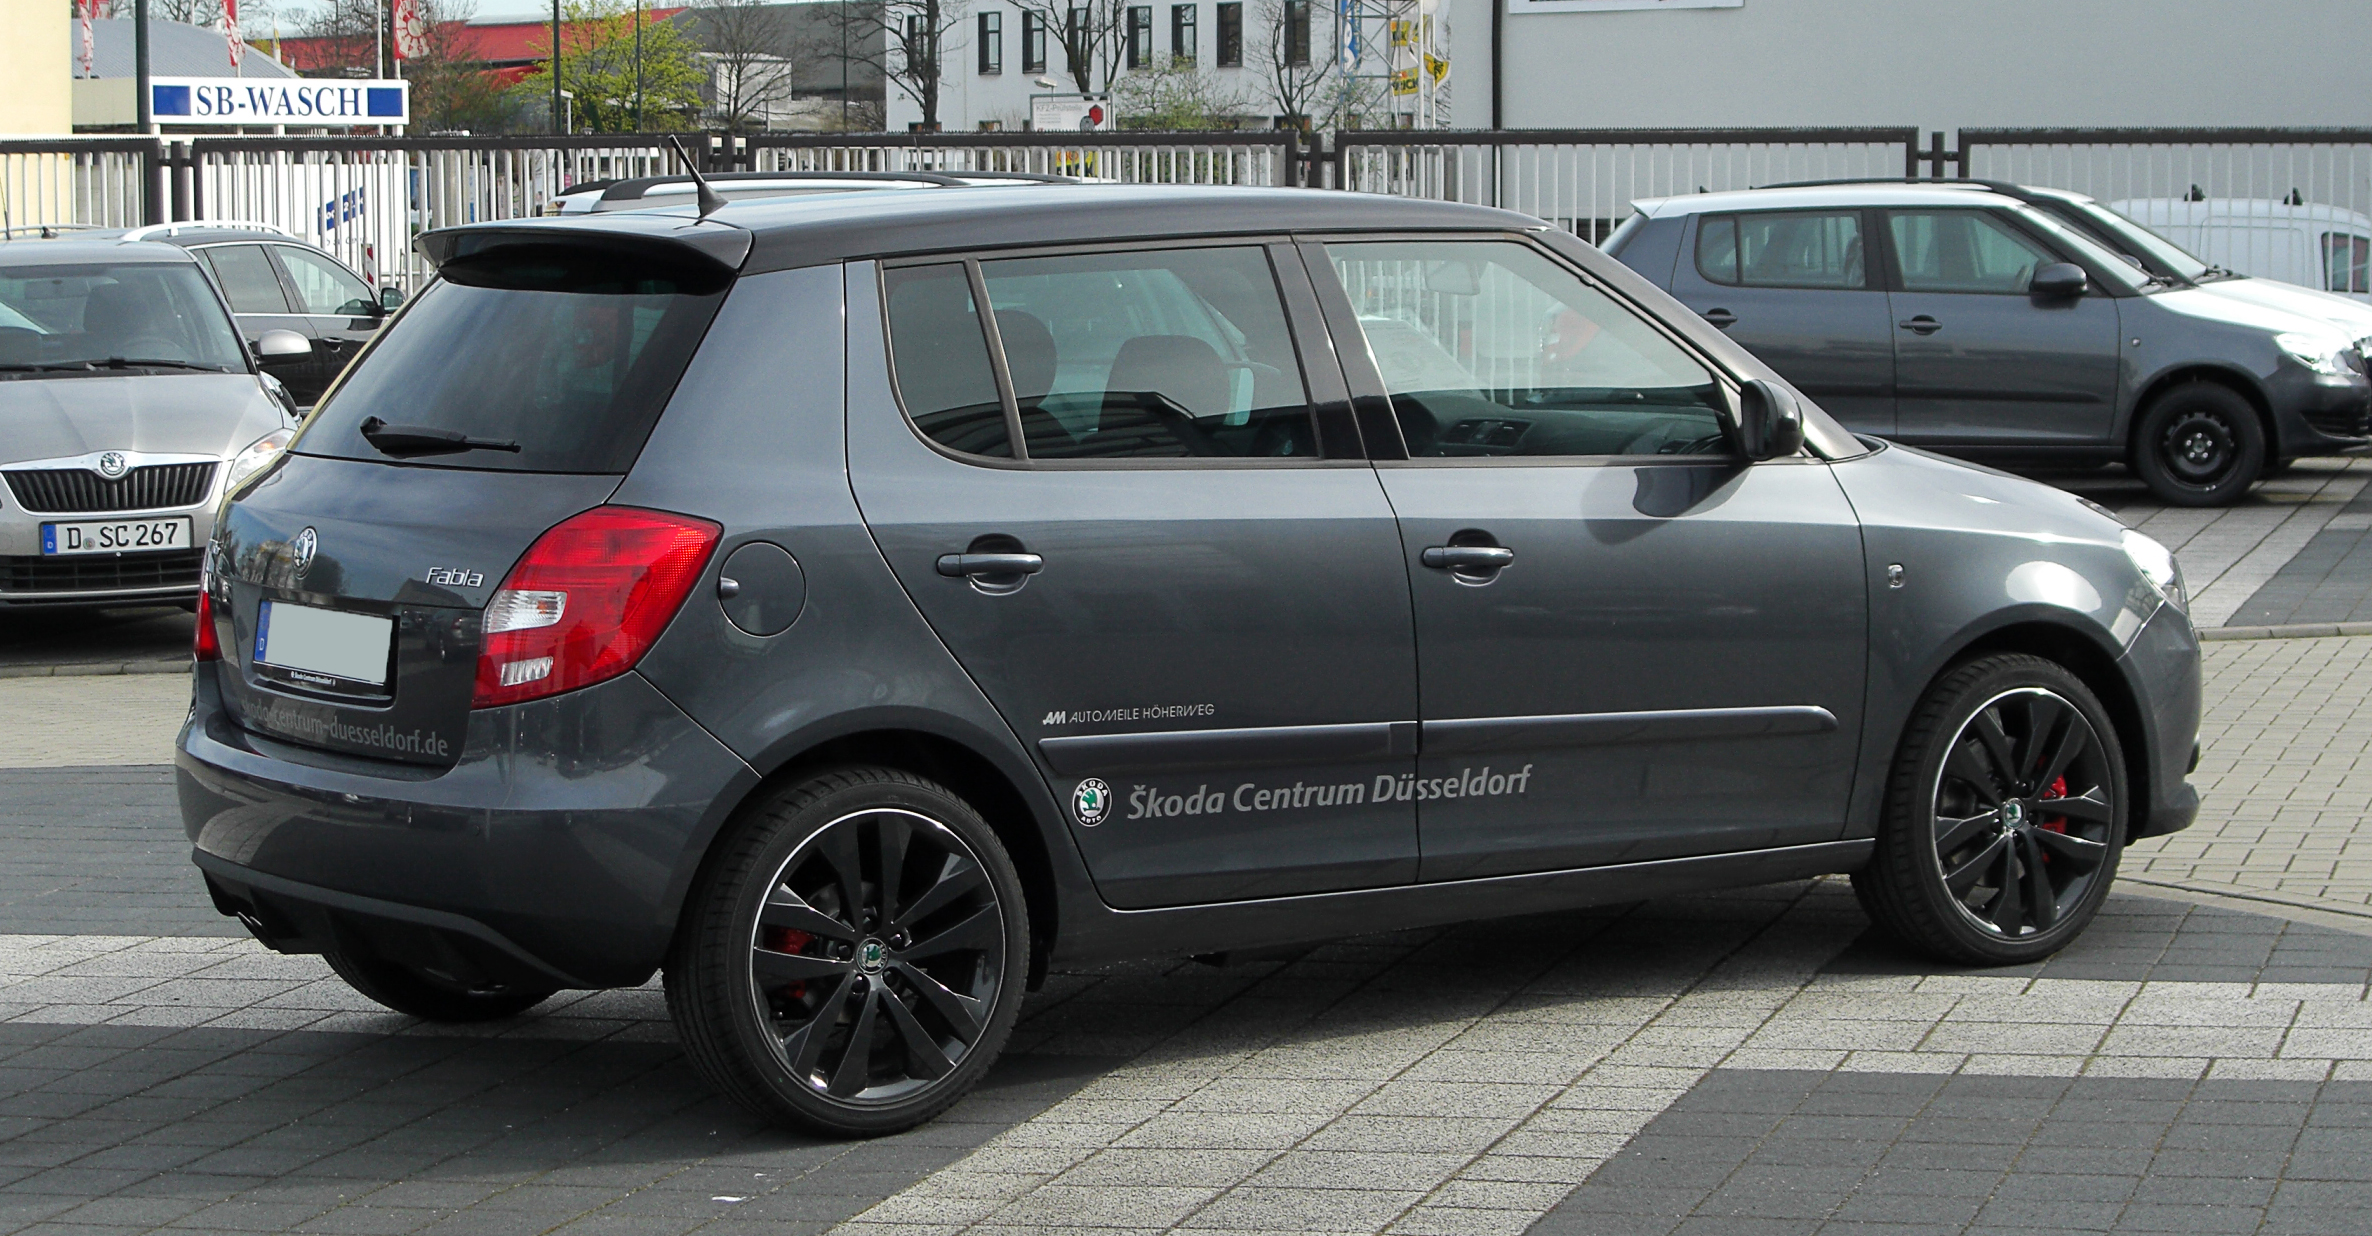 skoda fabia 1 4 tsi dsg rs ii facelift heckansicht 2 2 april 2011 d sseldorf. Black Bedroom Furniture Sets. Home Design Ideas